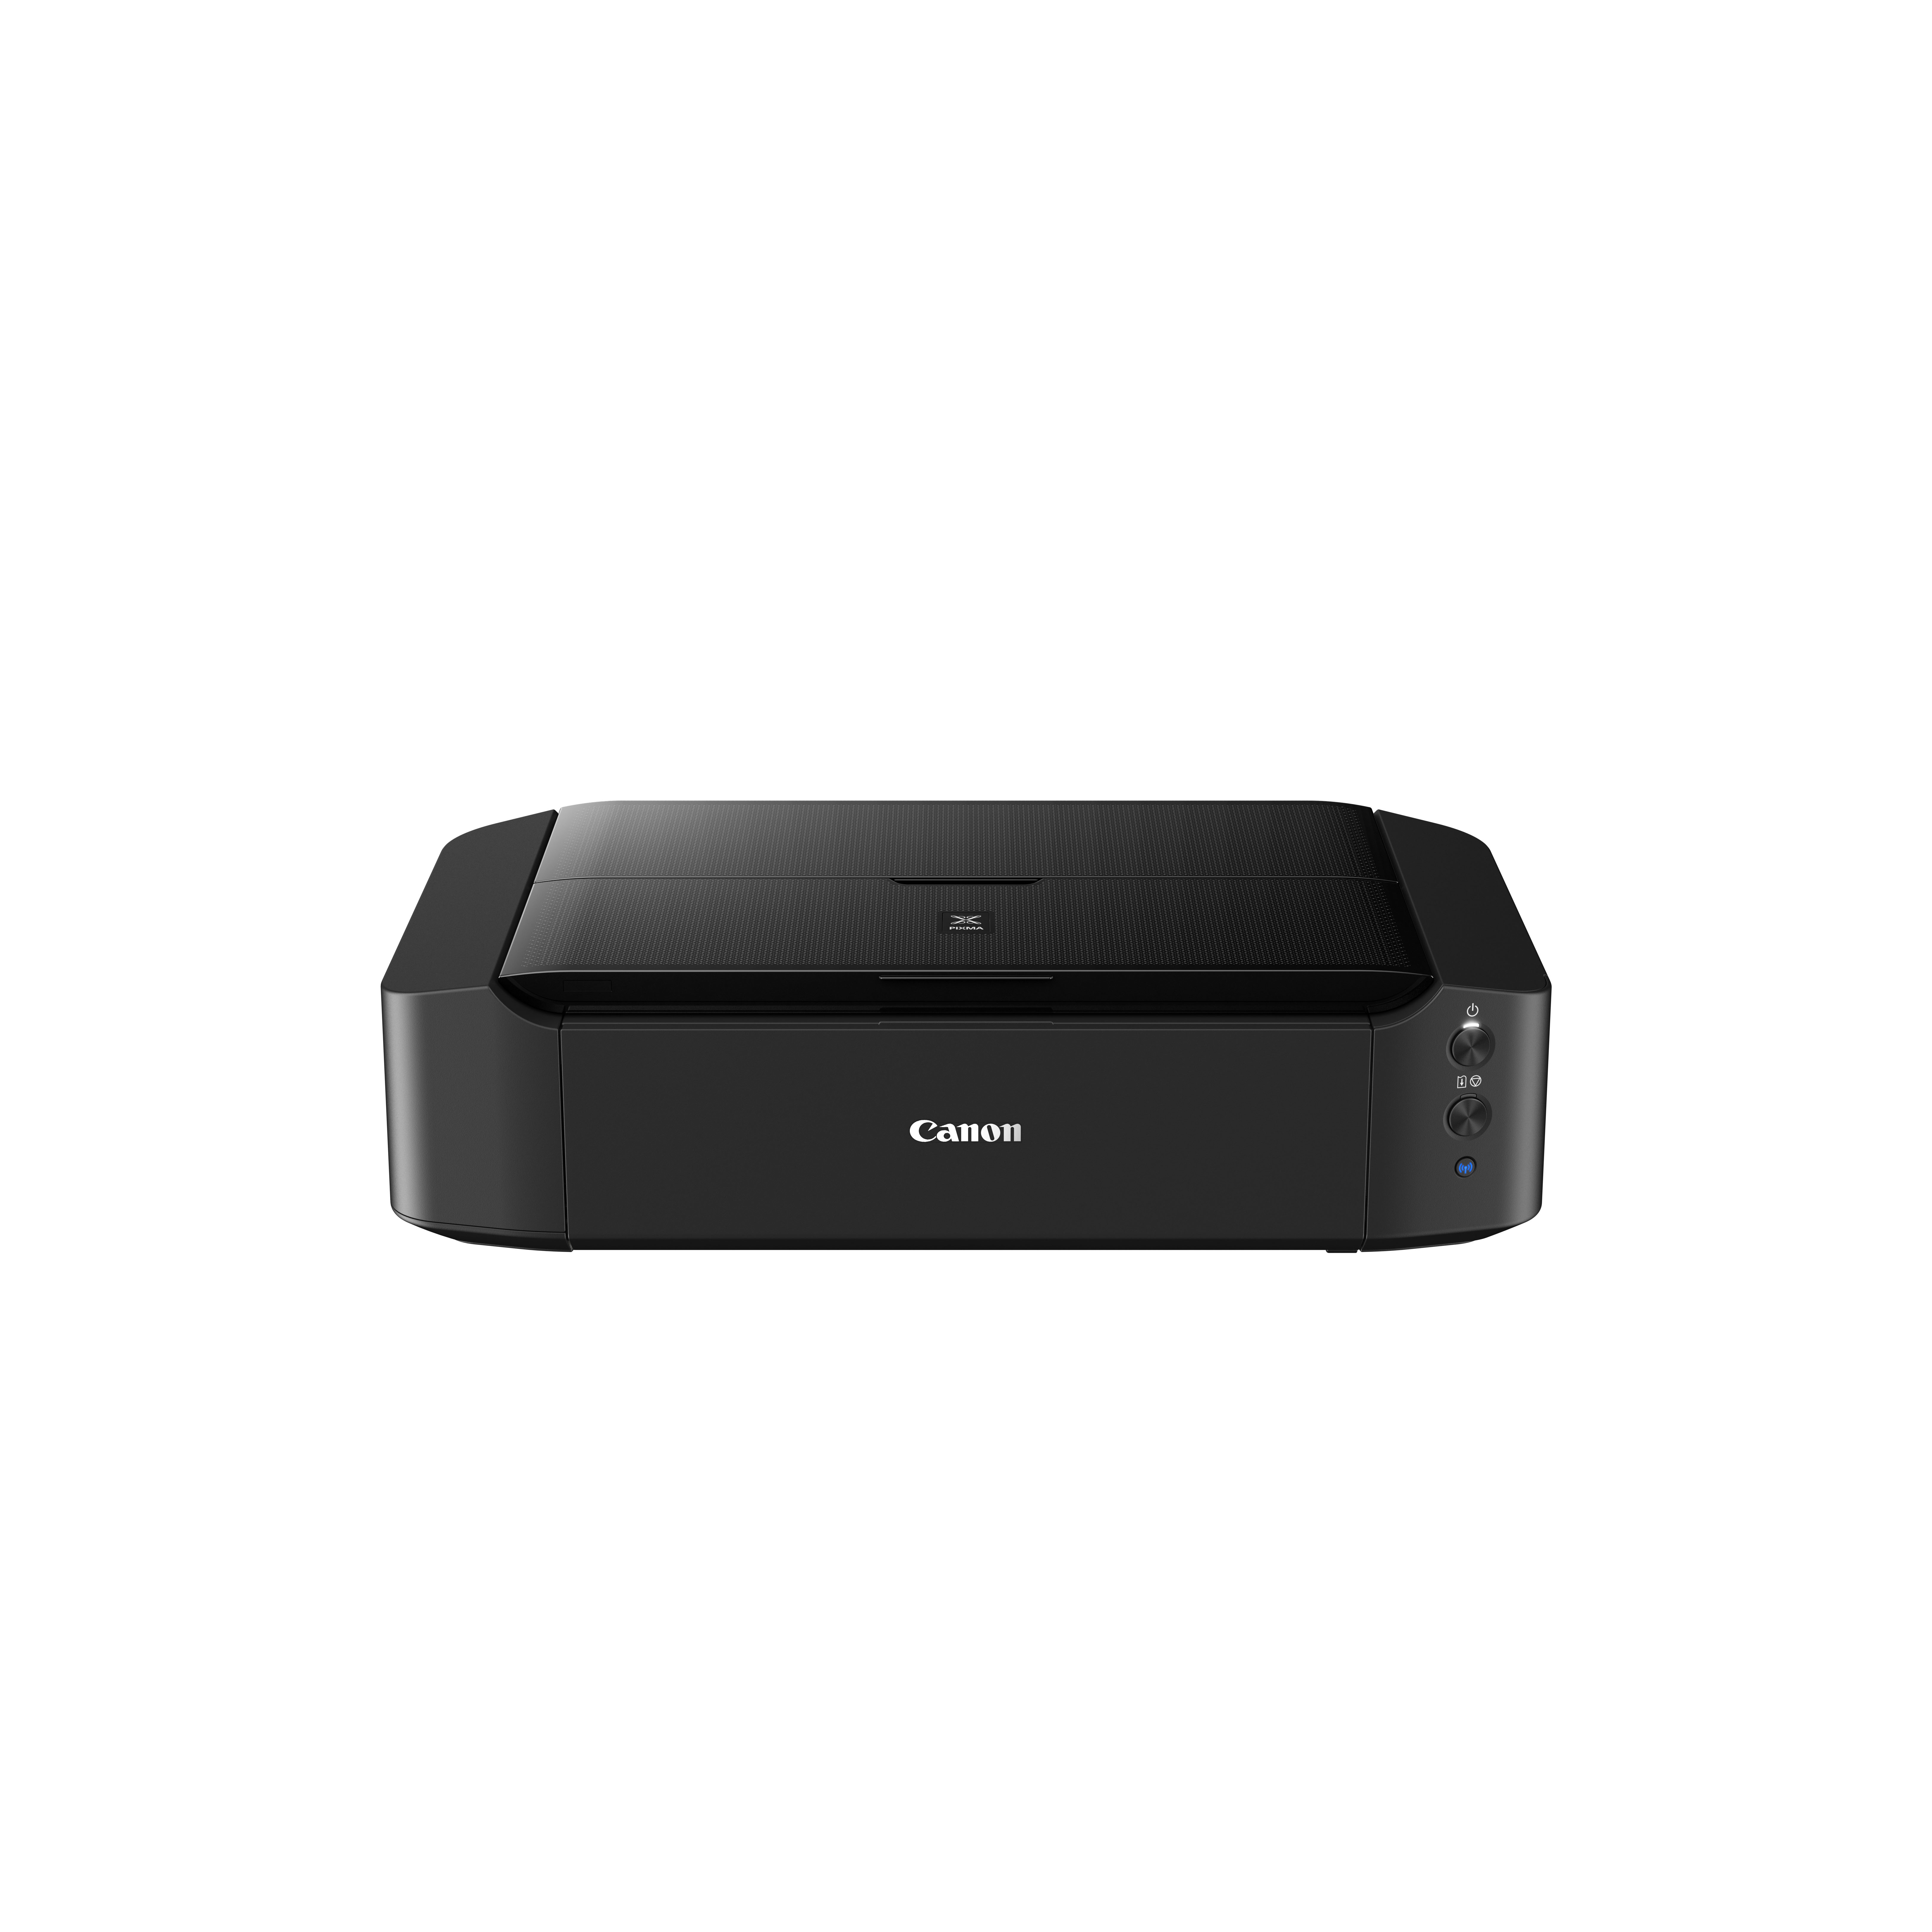 Canon PIXMA iP8750 - Foto-/Thermosubl.-drucker Farbig Tintenstrahldruck - 10,4 ppm